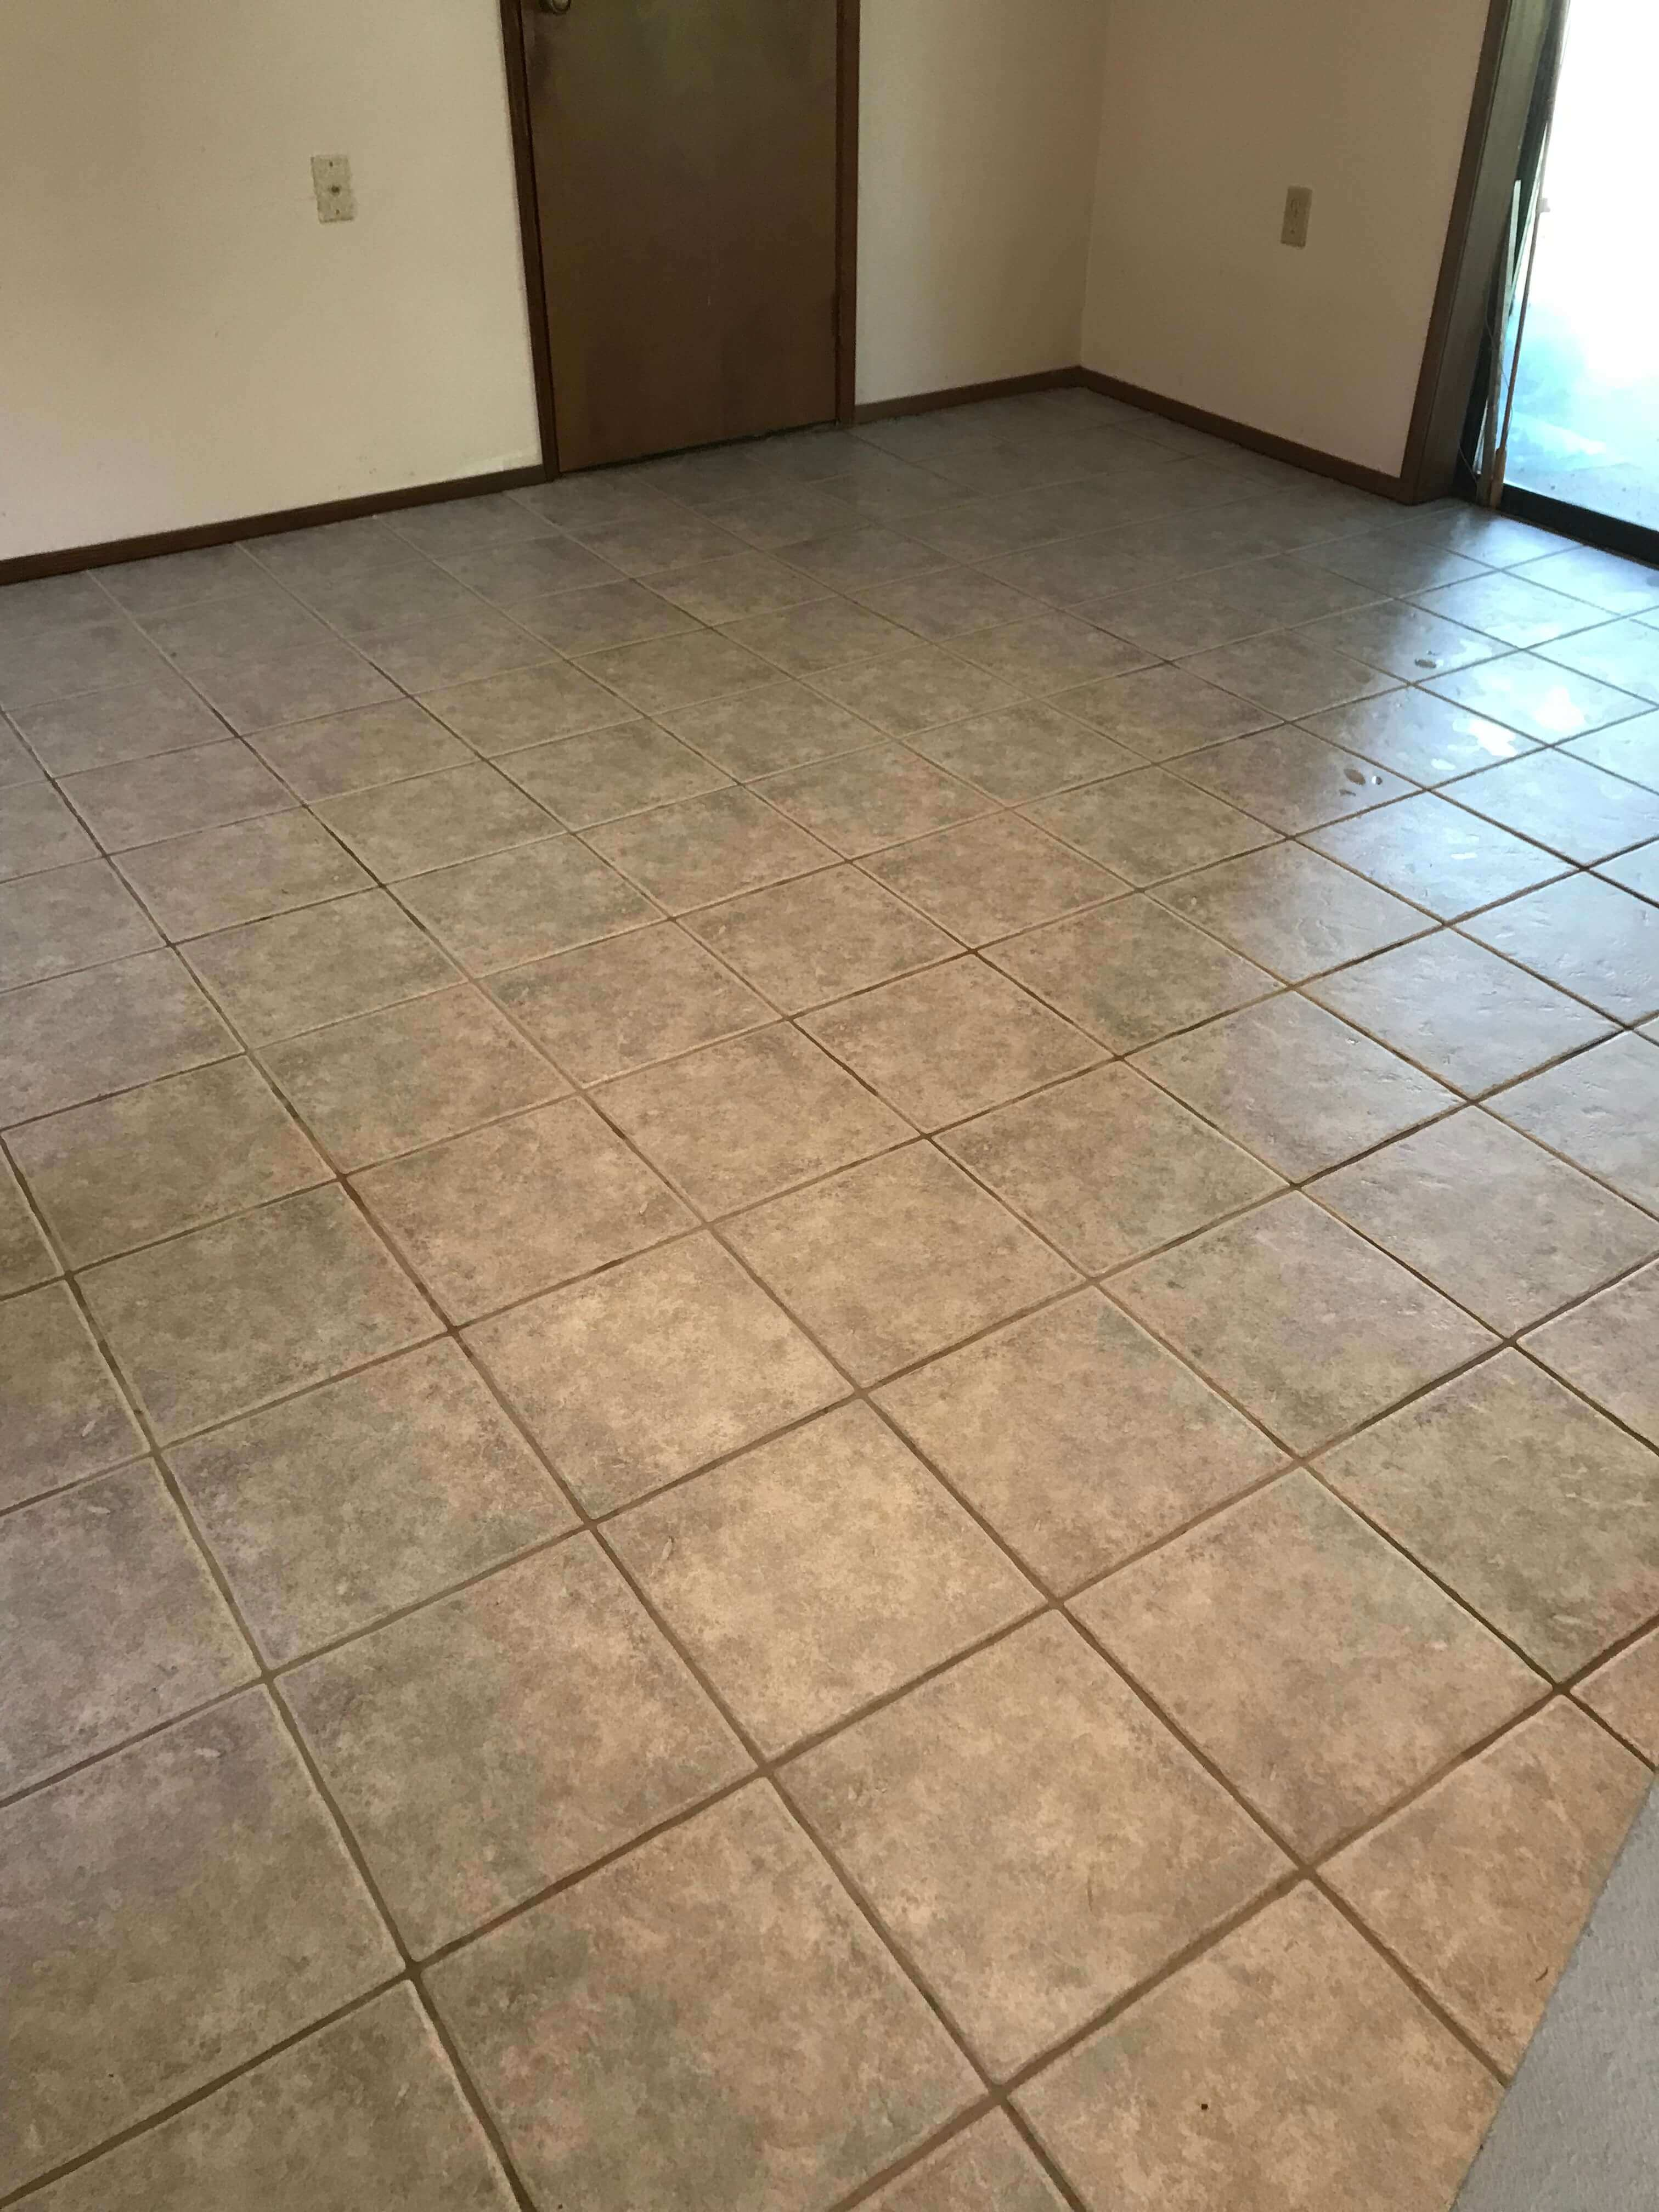 tiles that green leaf chem-dry recently cleaned